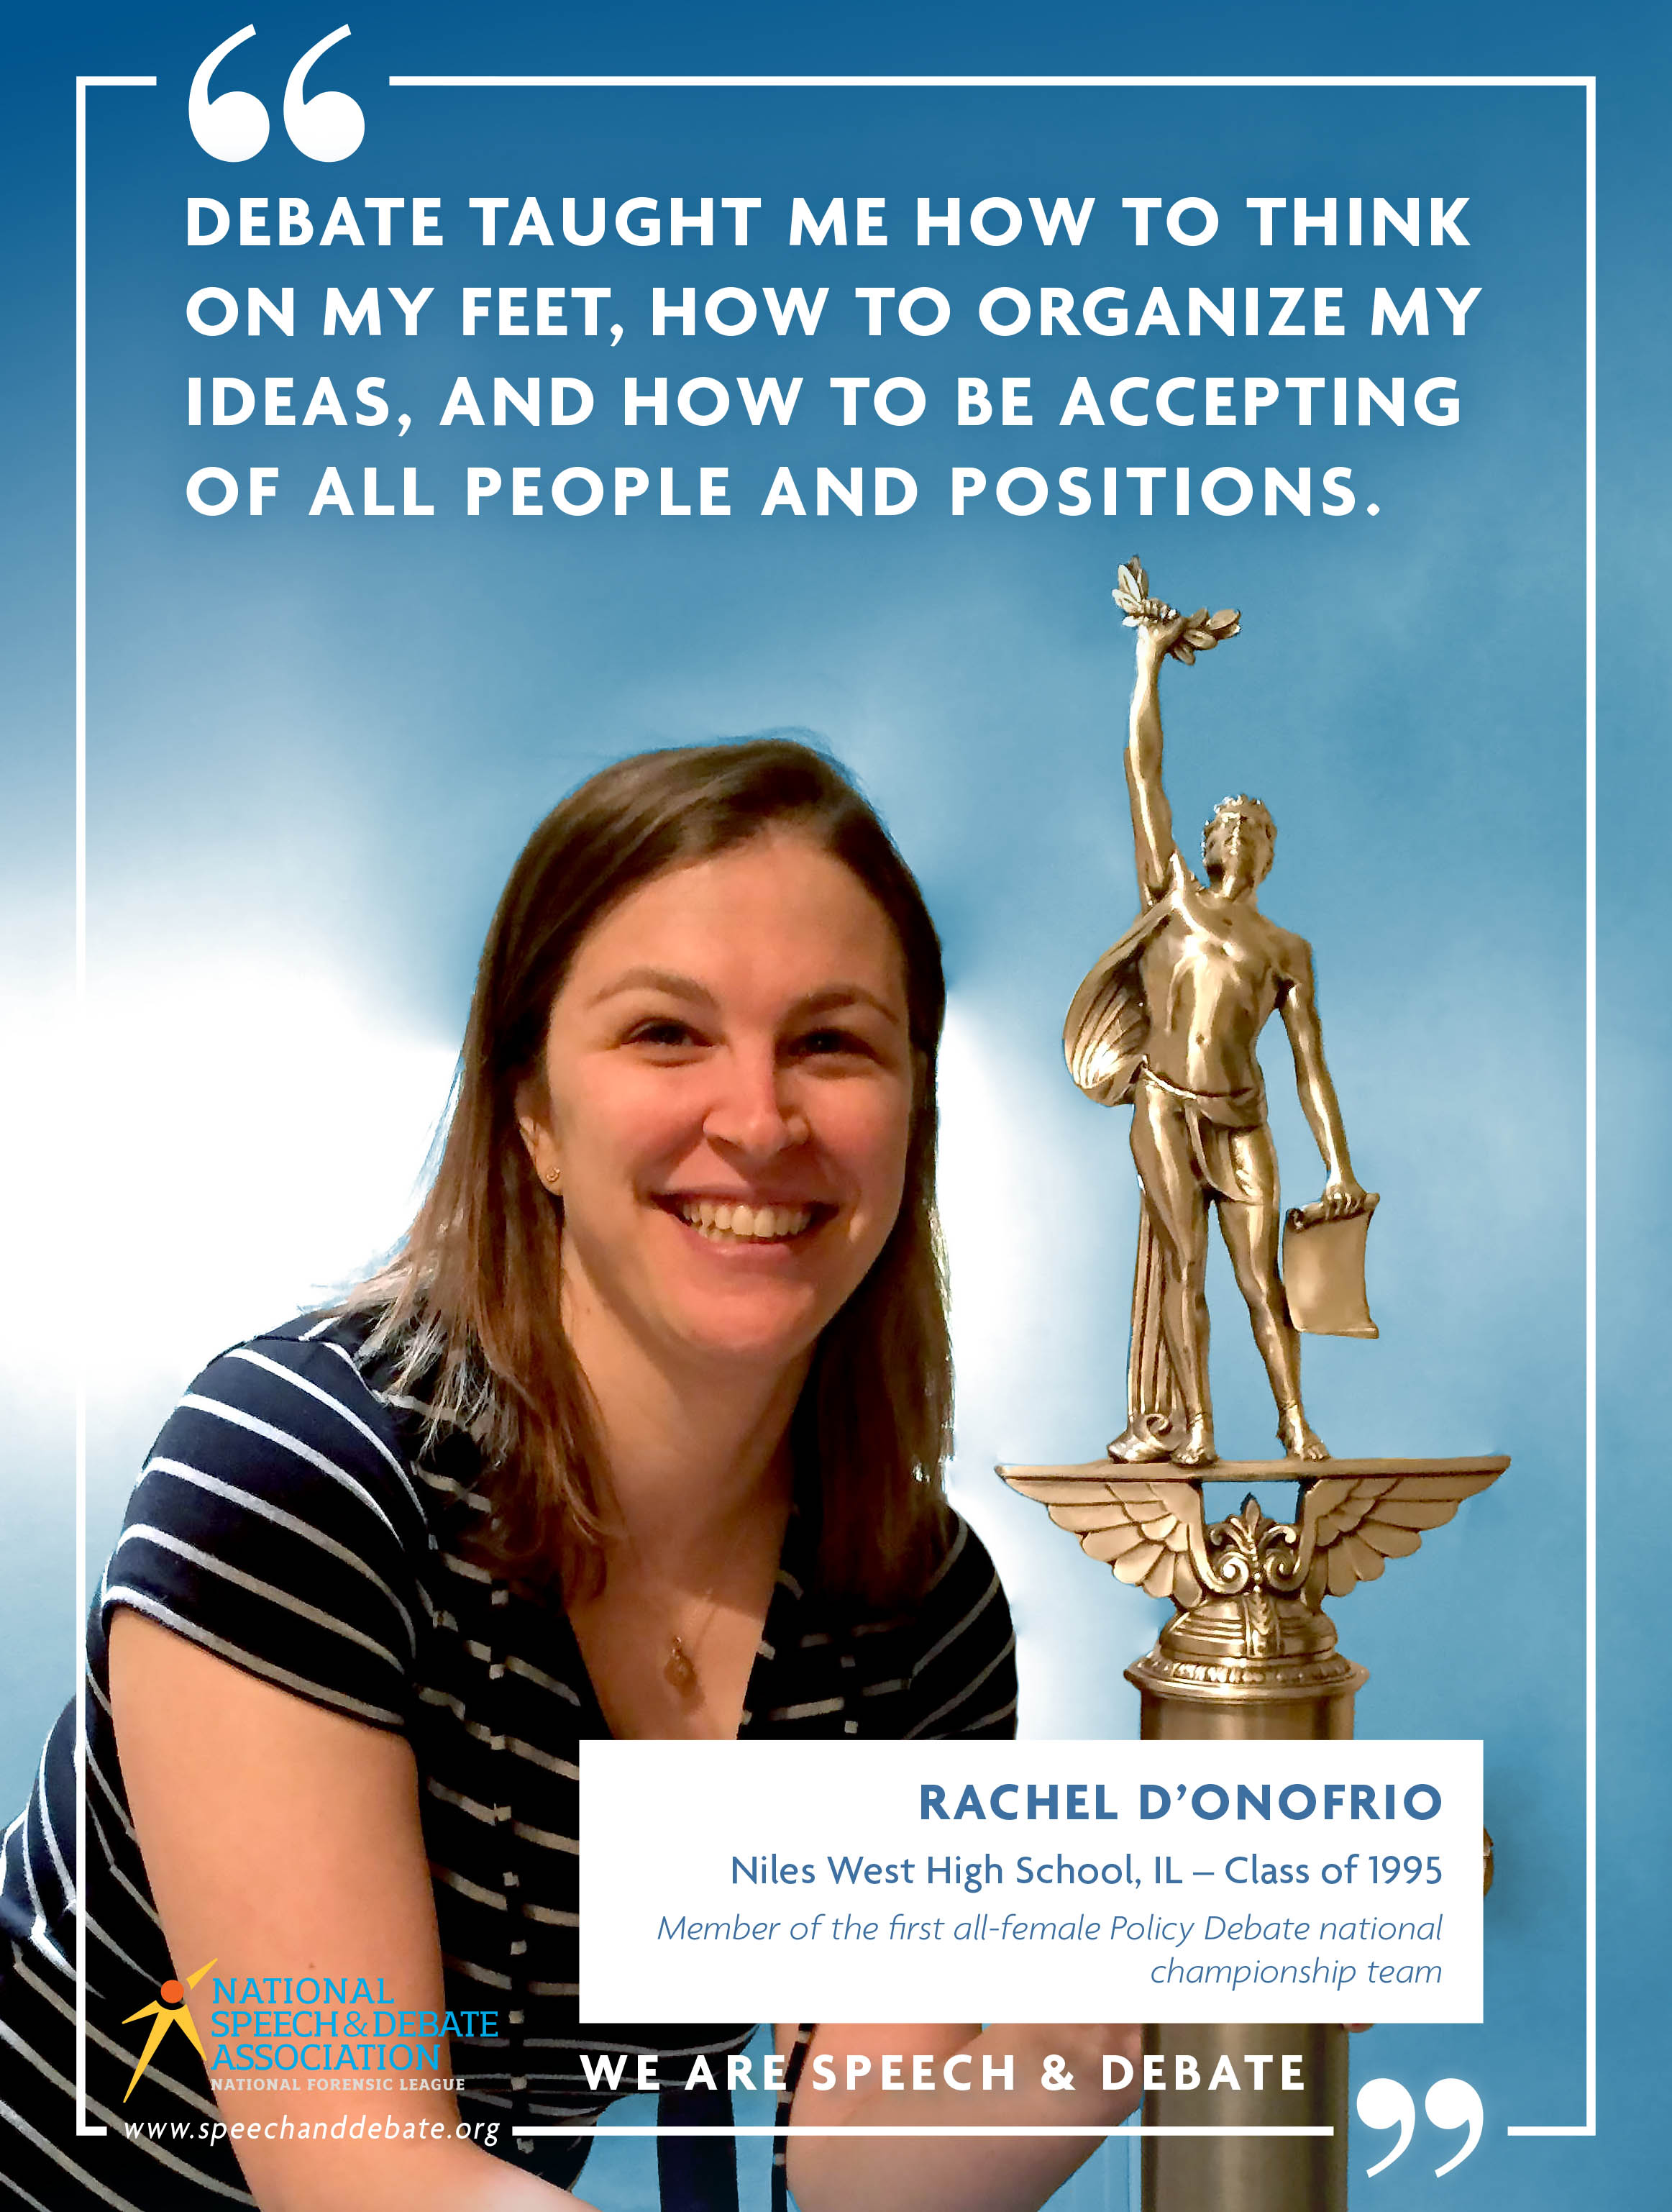 """DEBATE TAUGHT ME HOW TO THINK ON MY FEET, HOW TO ORGANIZE MY IDEAS, AND HOW TO BE ACCEPTING OF ALL PEOPLE AND POSITIONS."" - Rachel D'Onofrio"